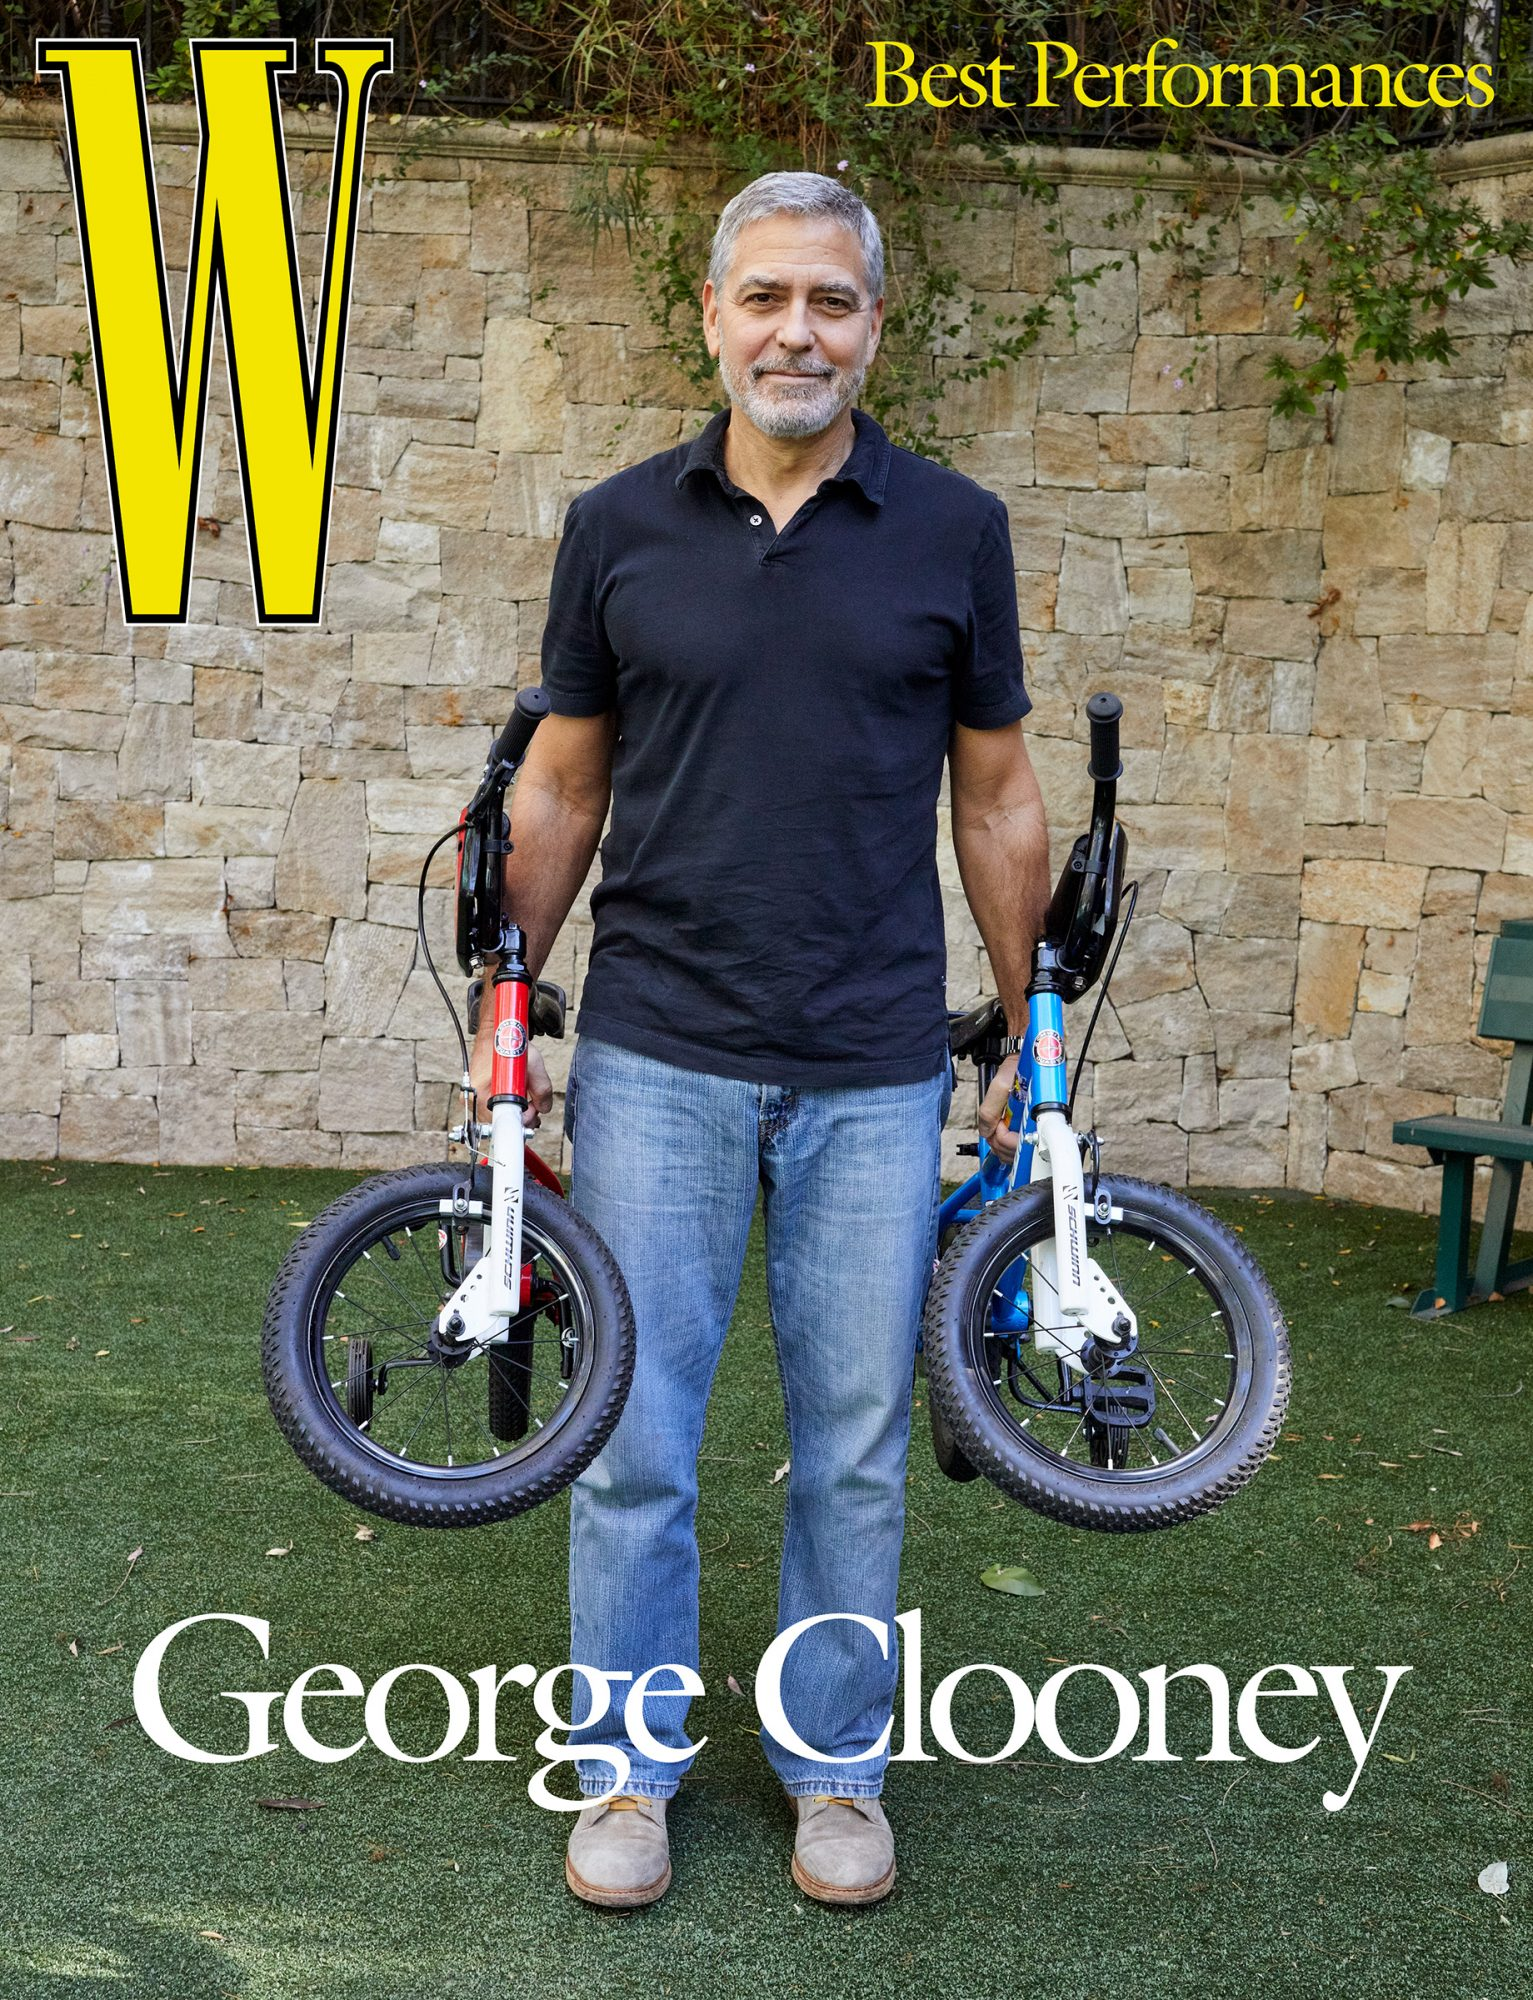 George Clooney on W Magazine